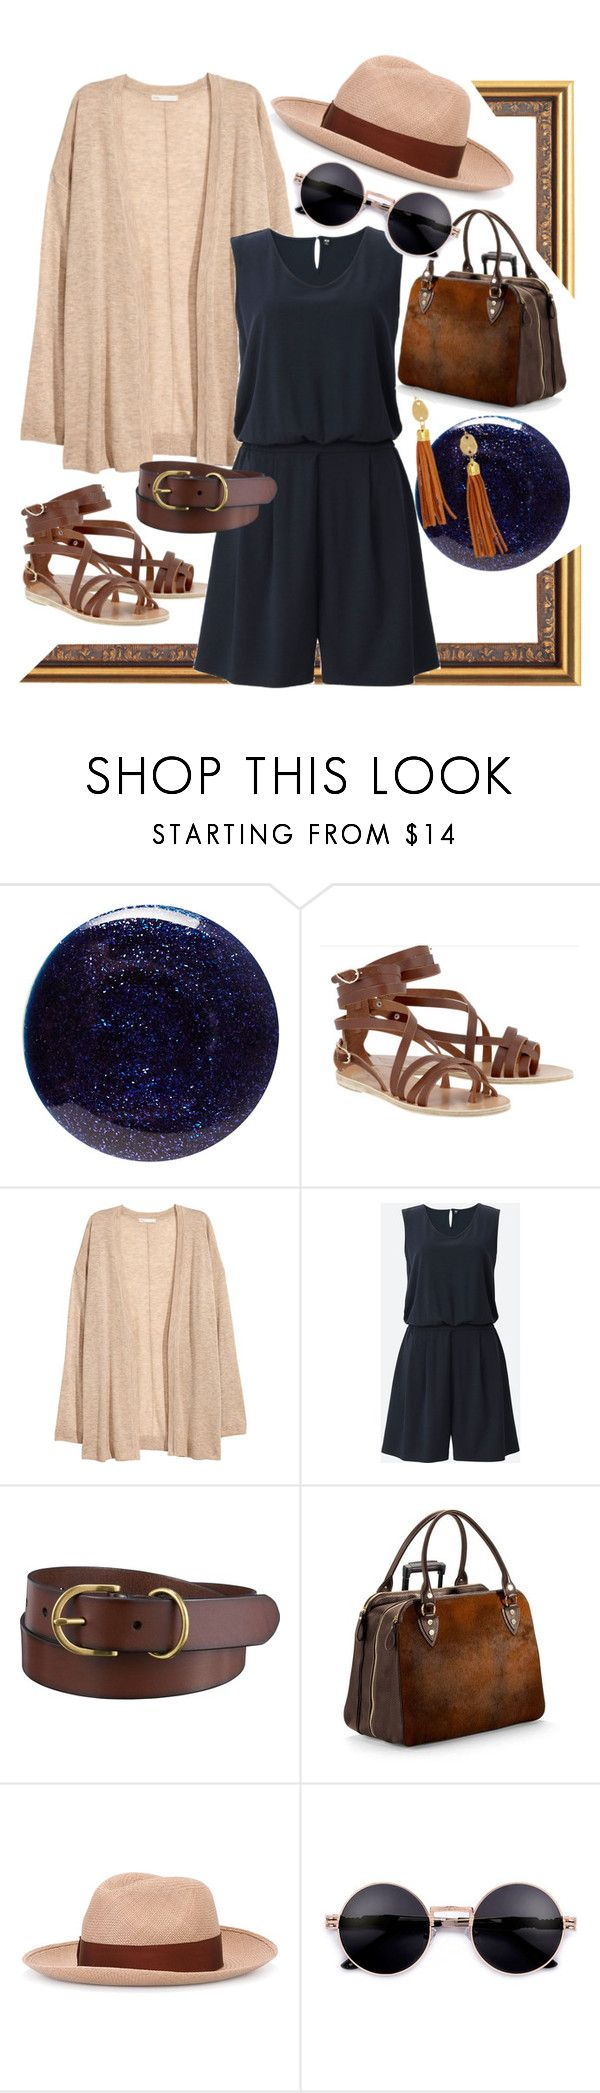 """""""Holiday #4"""" by hyenanhyna ❤ liked on Polyvore featuring Lauren B. Beauty, Ancient Greek Sandals, Uniqlo, Aspinal of London, Borsalino, Susan Shaw and roadtrip"""